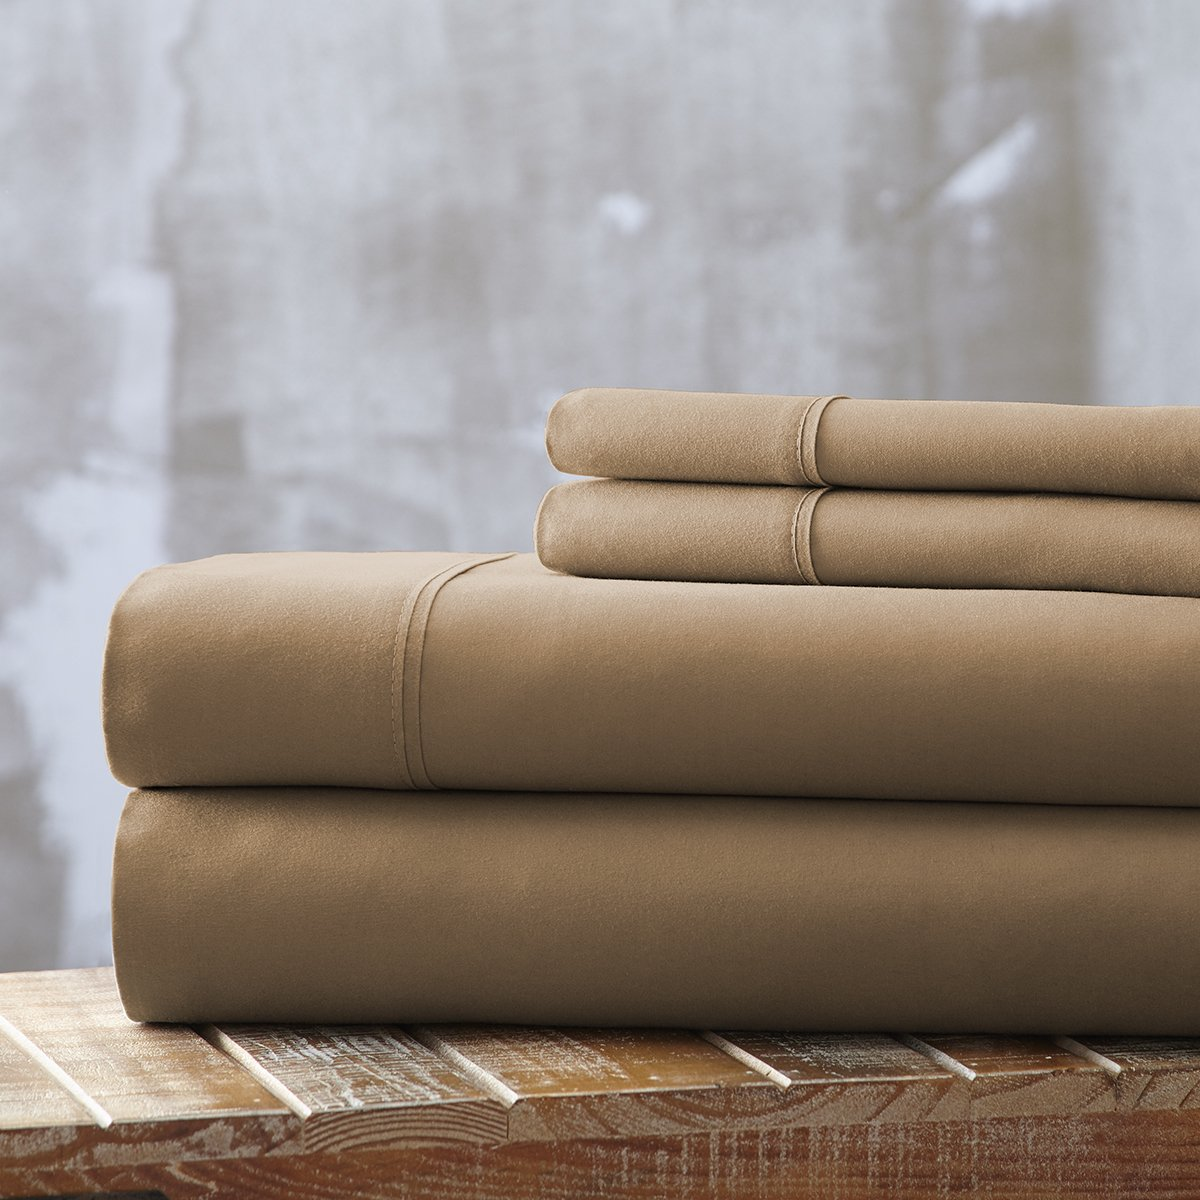 Spirit Linen, Inc Hotel 5th Ave EE-FULL-TAUPE-4PC Full Taupe Everyday Essentials 1800 Series 4Pc Sheet Set